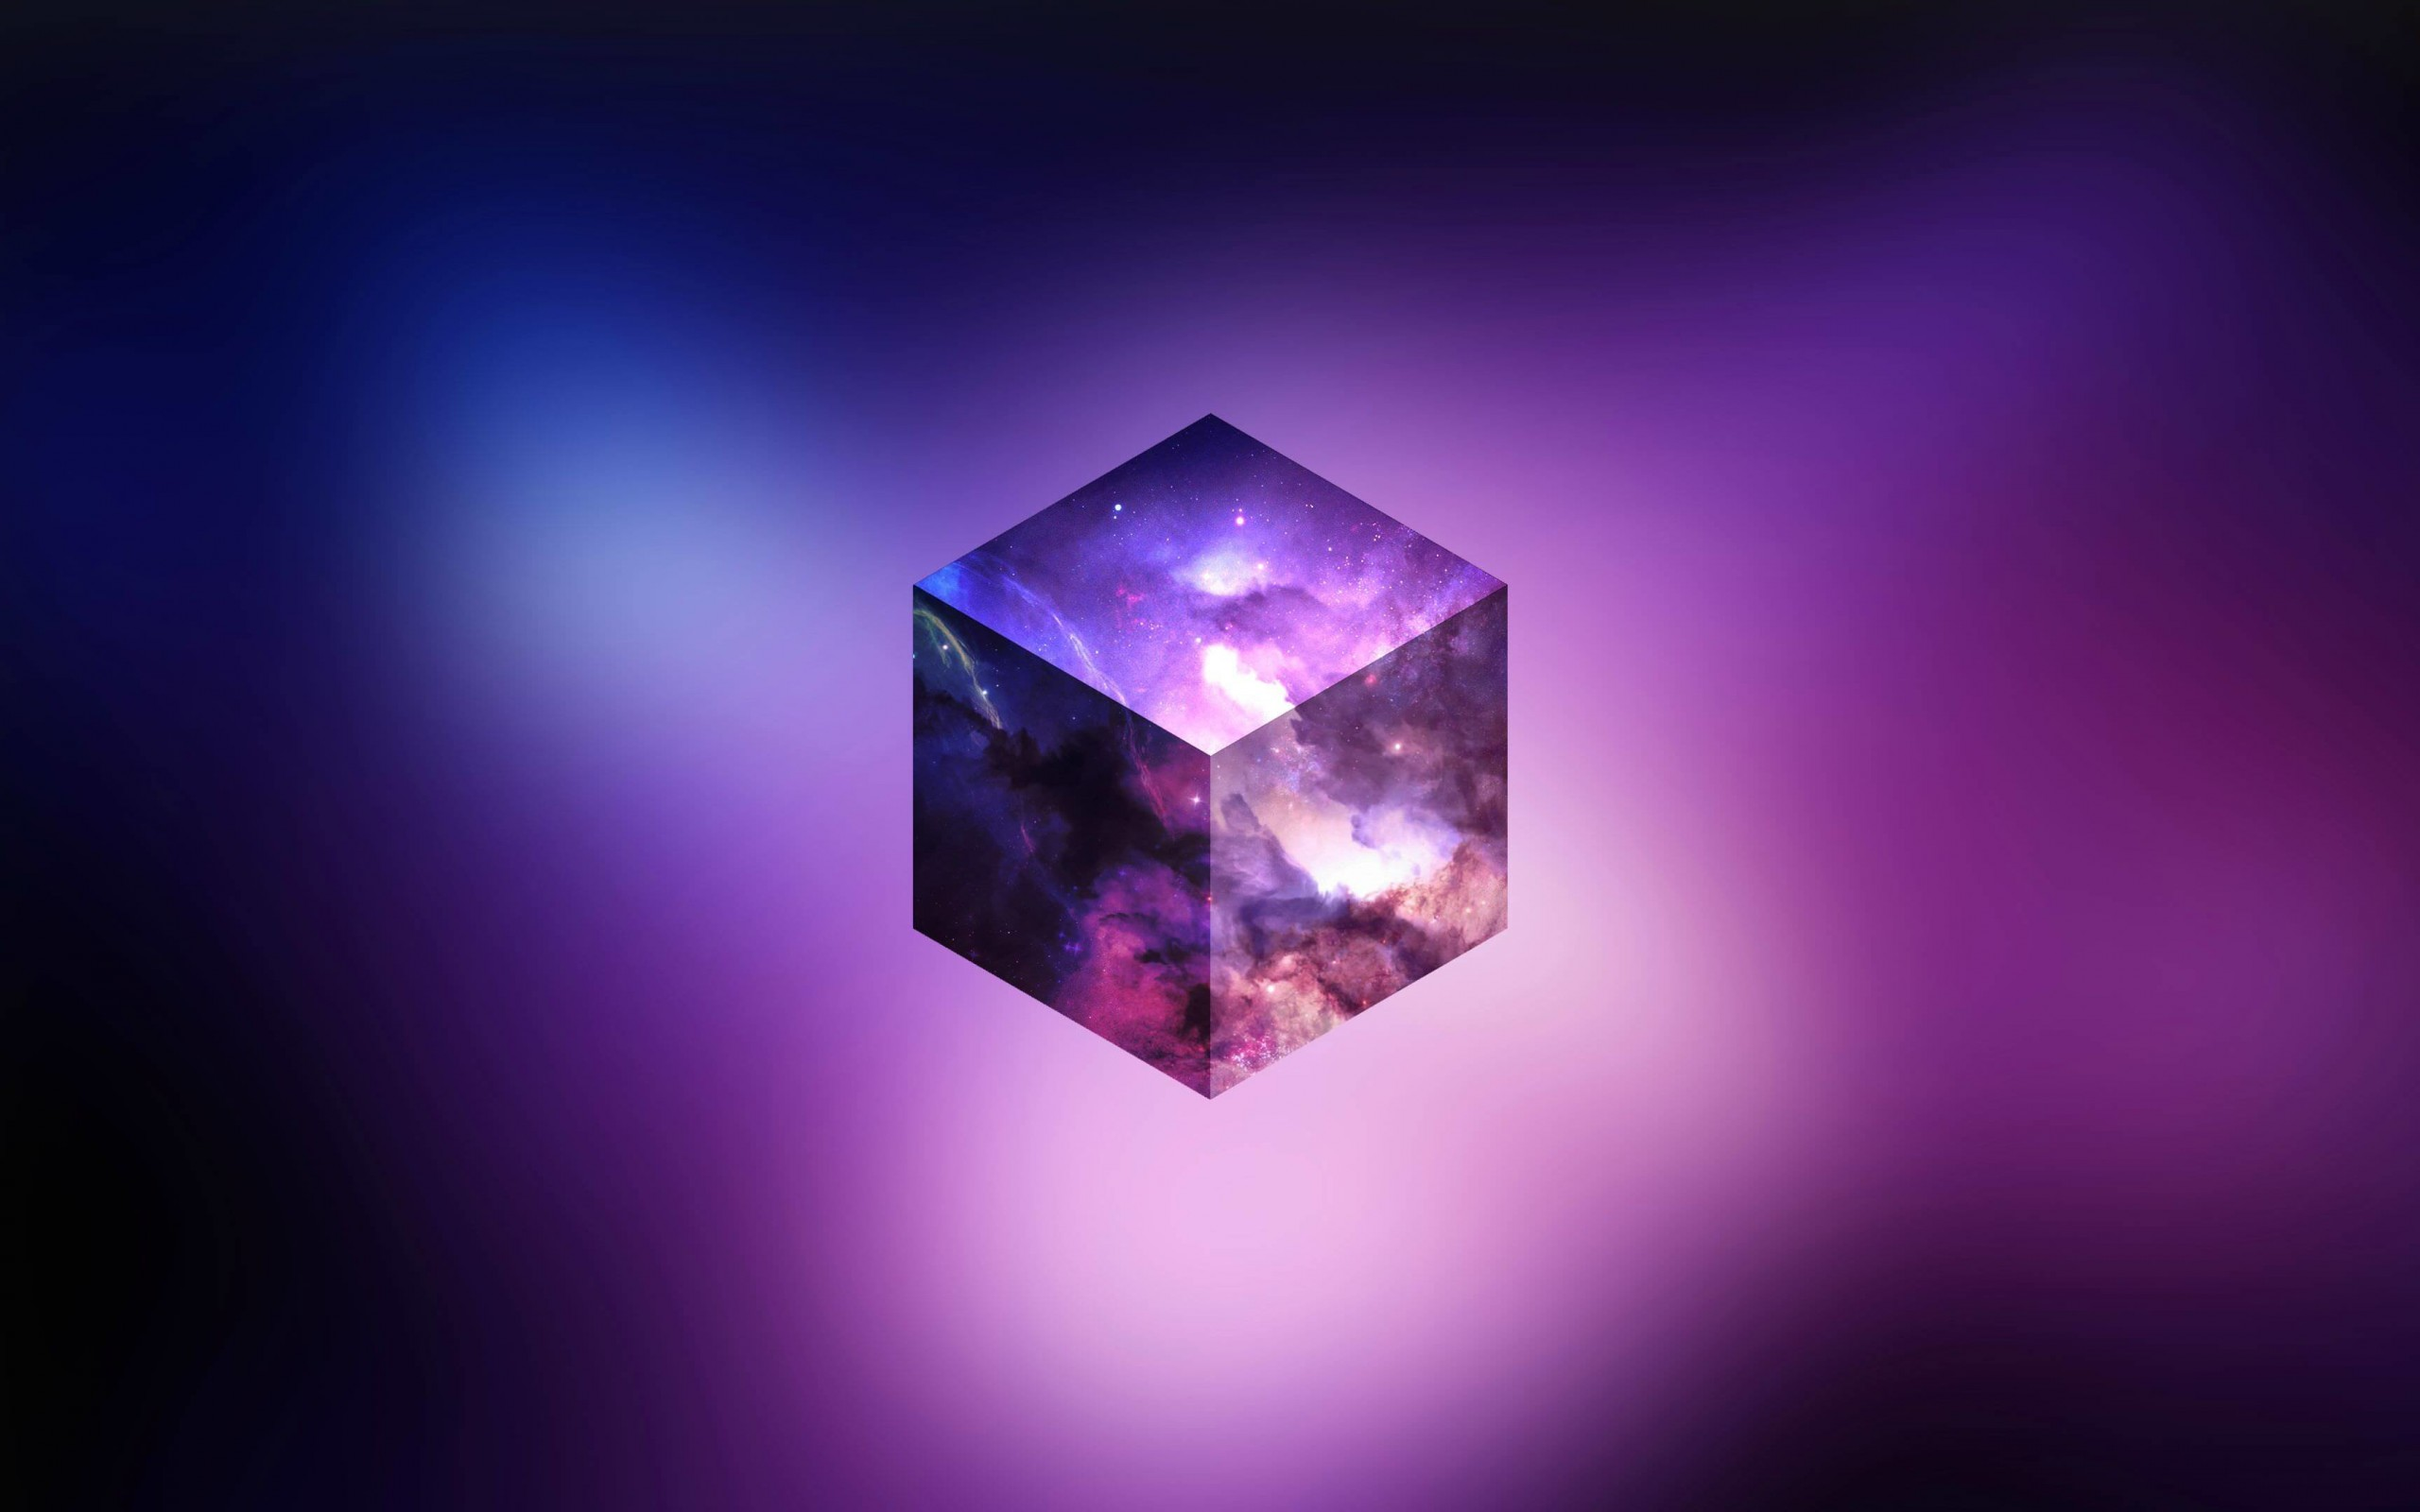 Cosmic Cube Wallpaper for Desktop 2560x1600